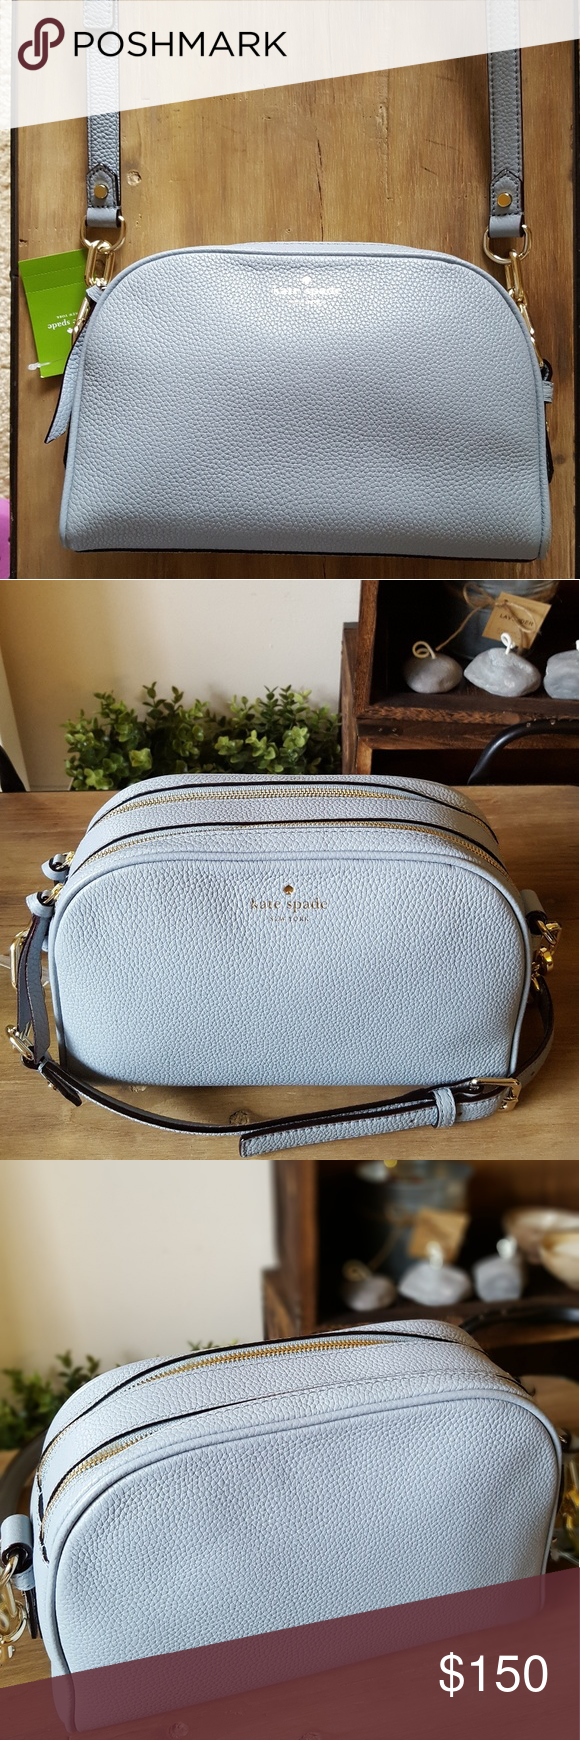 Kate Spade Crossbody Brand New with Tags •pebbled leather with smooth leather split trim •capital kate jacquard lining •14-karat gold plated hardware kate spade Bags Crossbody Bags